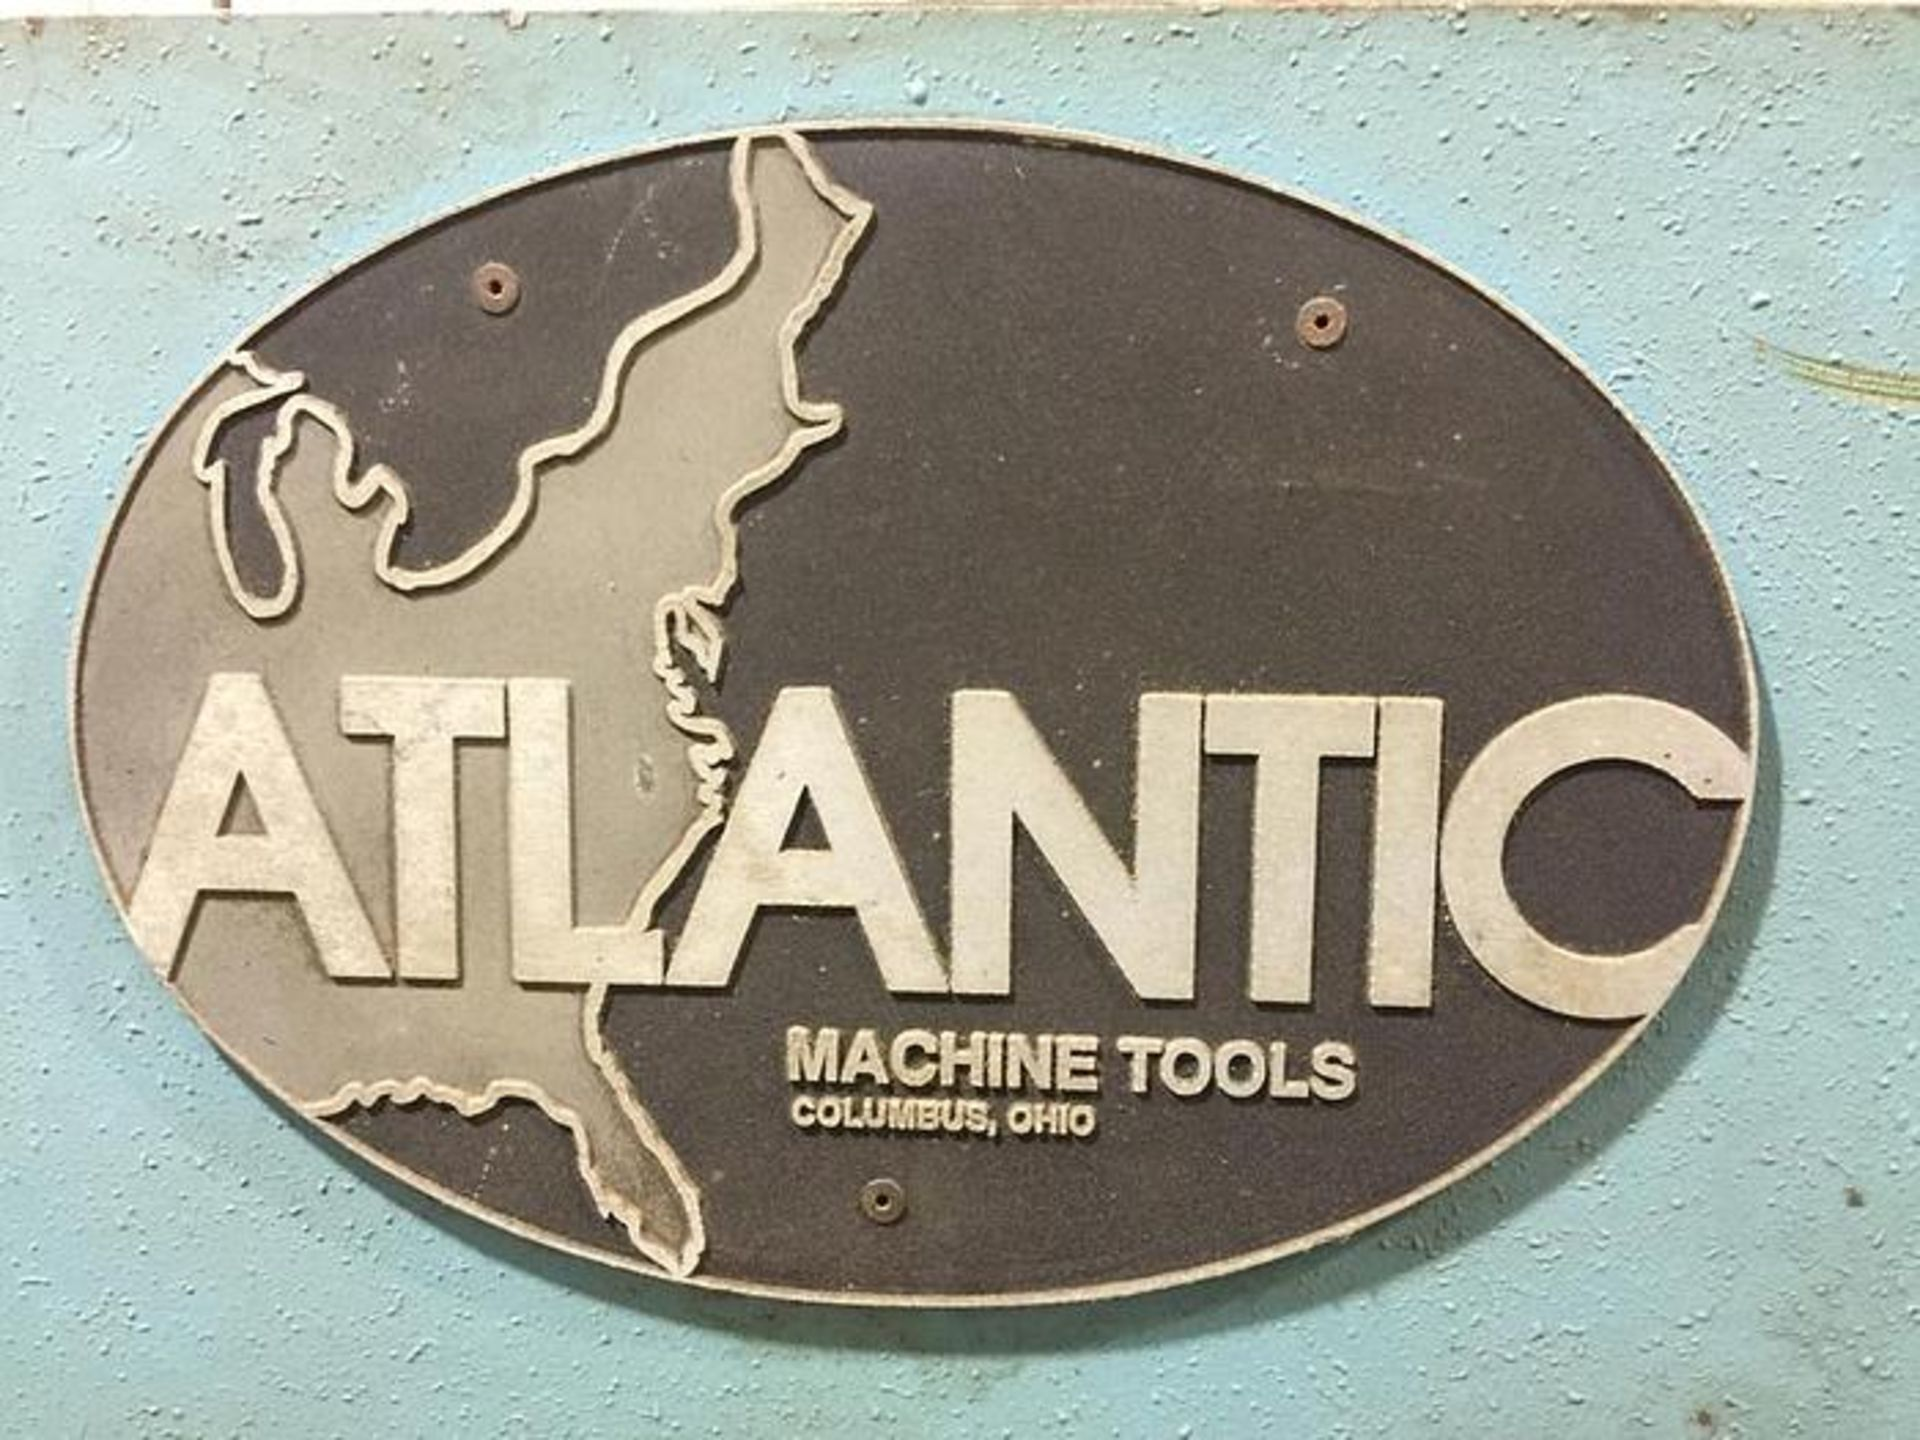 "ATLANTIC 10' X 1/4"" COST CUTTER HYDRAULIC POWER SQUARING SHEAR, SN 80-00-68 - Image 4 of 5"